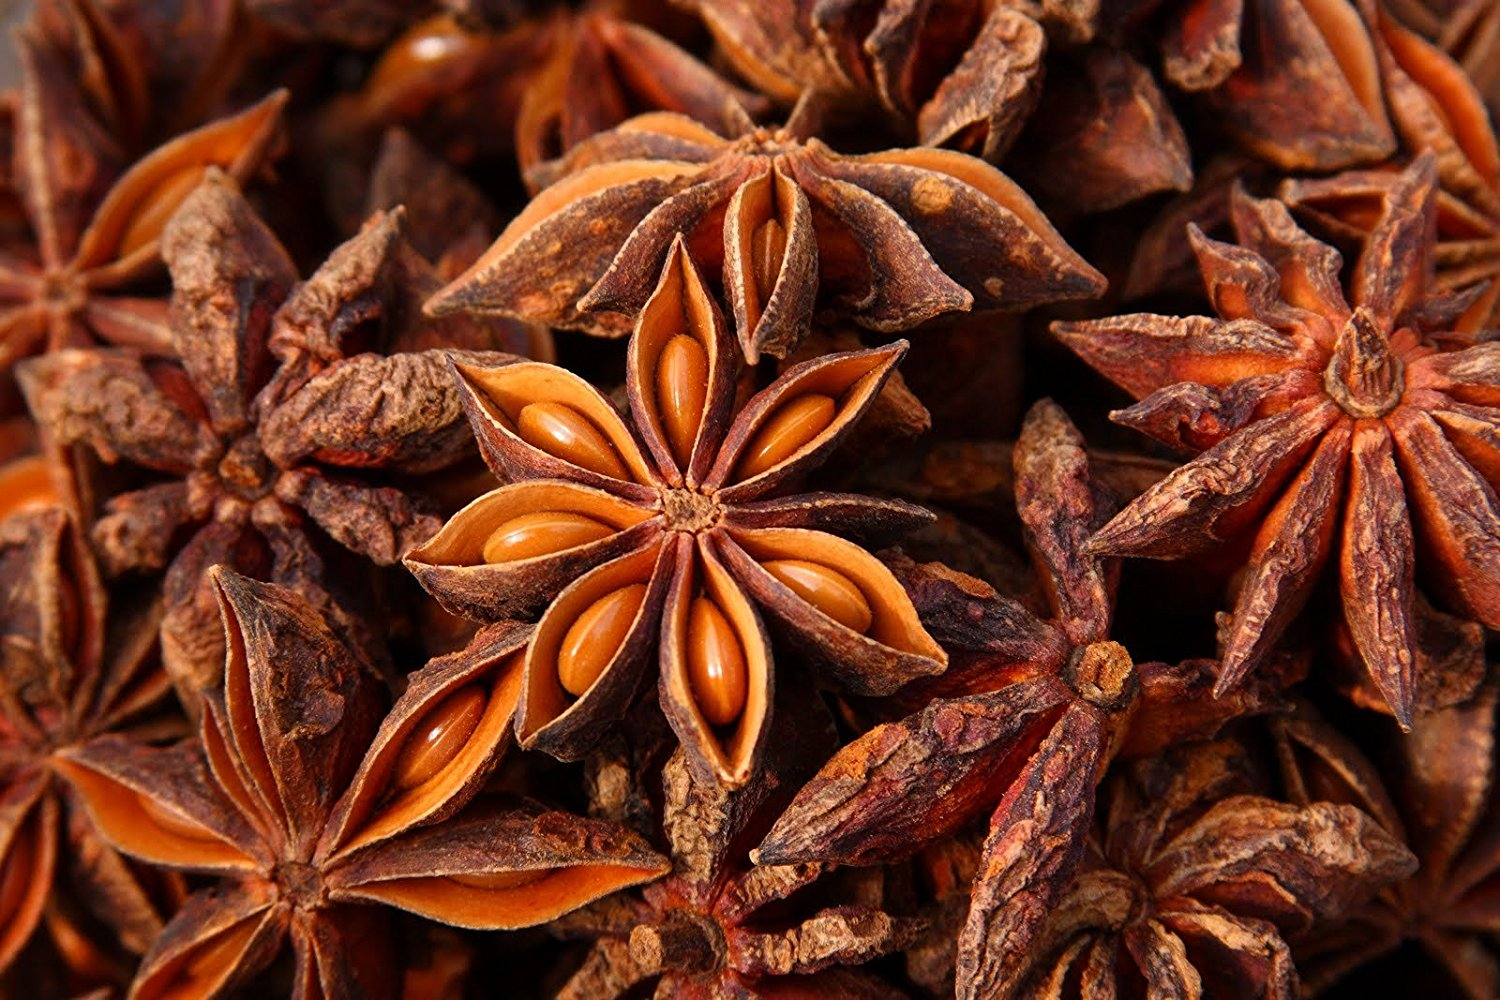 Images of Star Anise   1500x1000